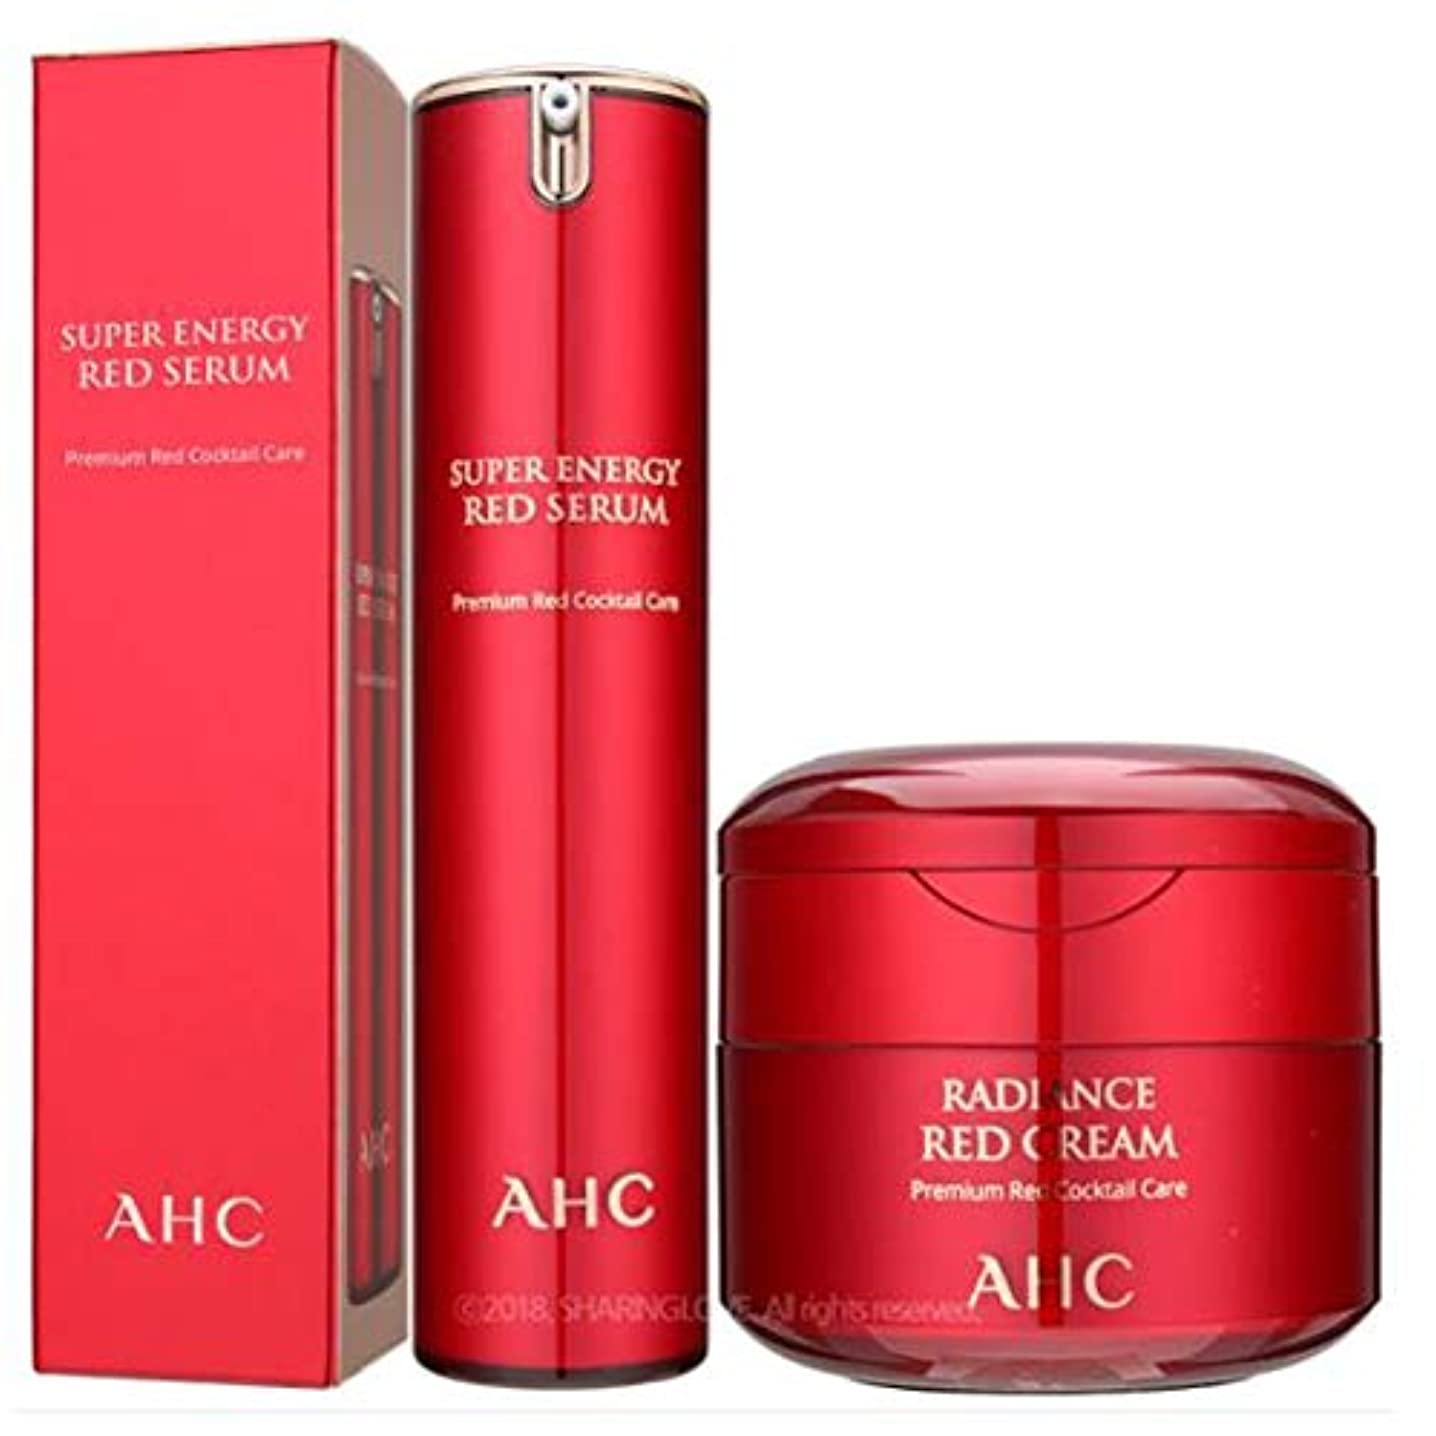 AHC Season2 Super Energy Red Serum 50ml&AHC Season2 Super Energy Red Cream 50ml [parallel import goods]